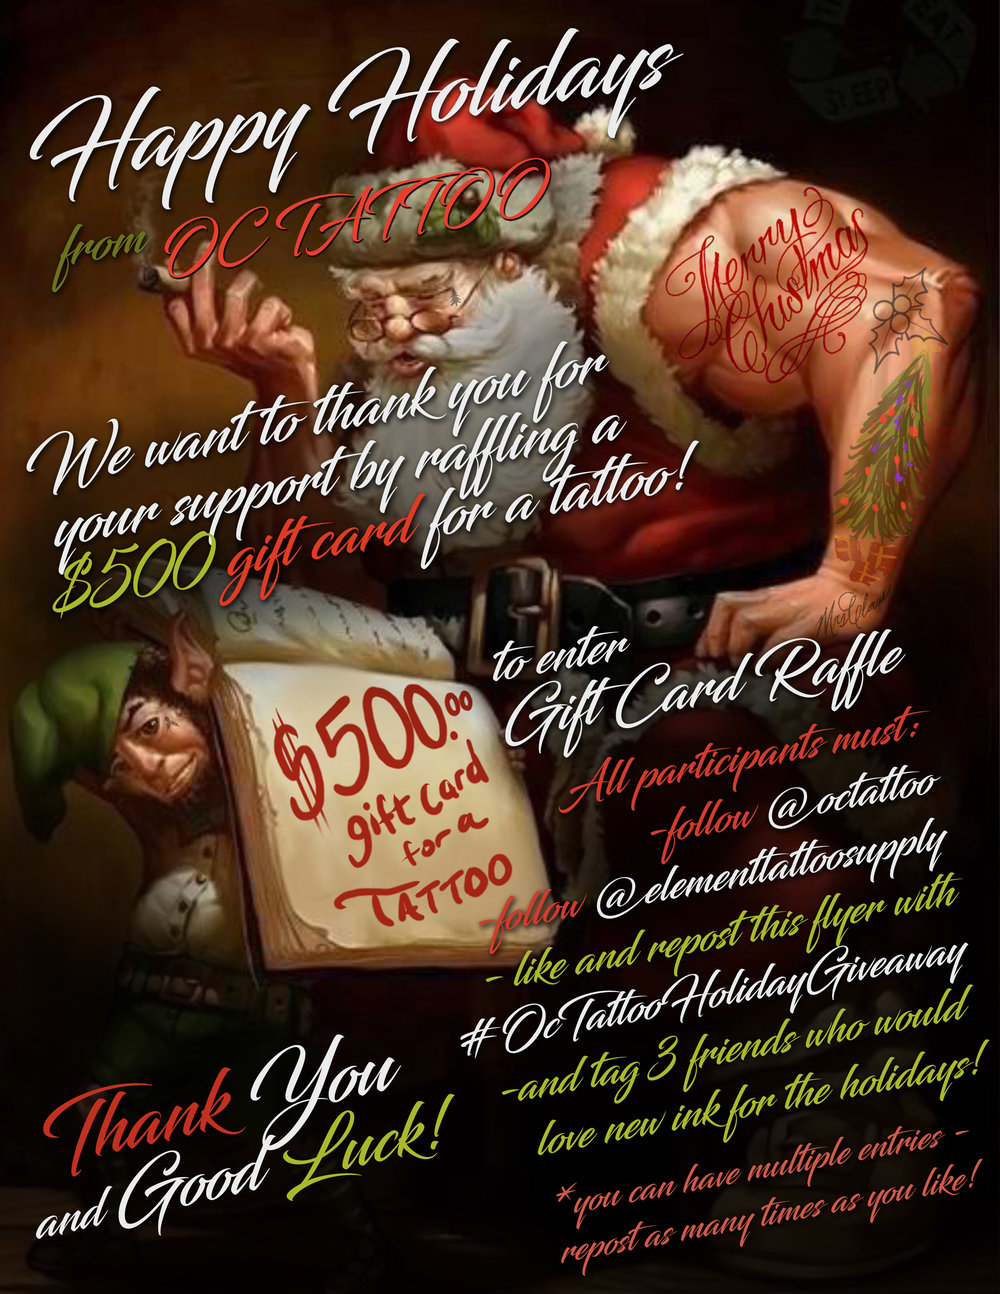 Happy Holidays from OC Tattoo! We would love to thank you for your support by gifting a $500 tattoo gift card to one lucky winner! To enter Gift Card Raffle  All participants must  -Follow @OCTattoo  -Follow @ElementTattooSupply  - Like and repost this flyer with #OCTattooHolidayGiveaway  -& tag 3 friends who would love new ink for the Holidays           ***Raffle ends on Saturday December 23rd at 5 p.m.  You can have multiple entries-  repost as many times as you would like before then. Winner will be announced on our @OCTattoo page on Christmas Eve!  Thank you and Goodluck!